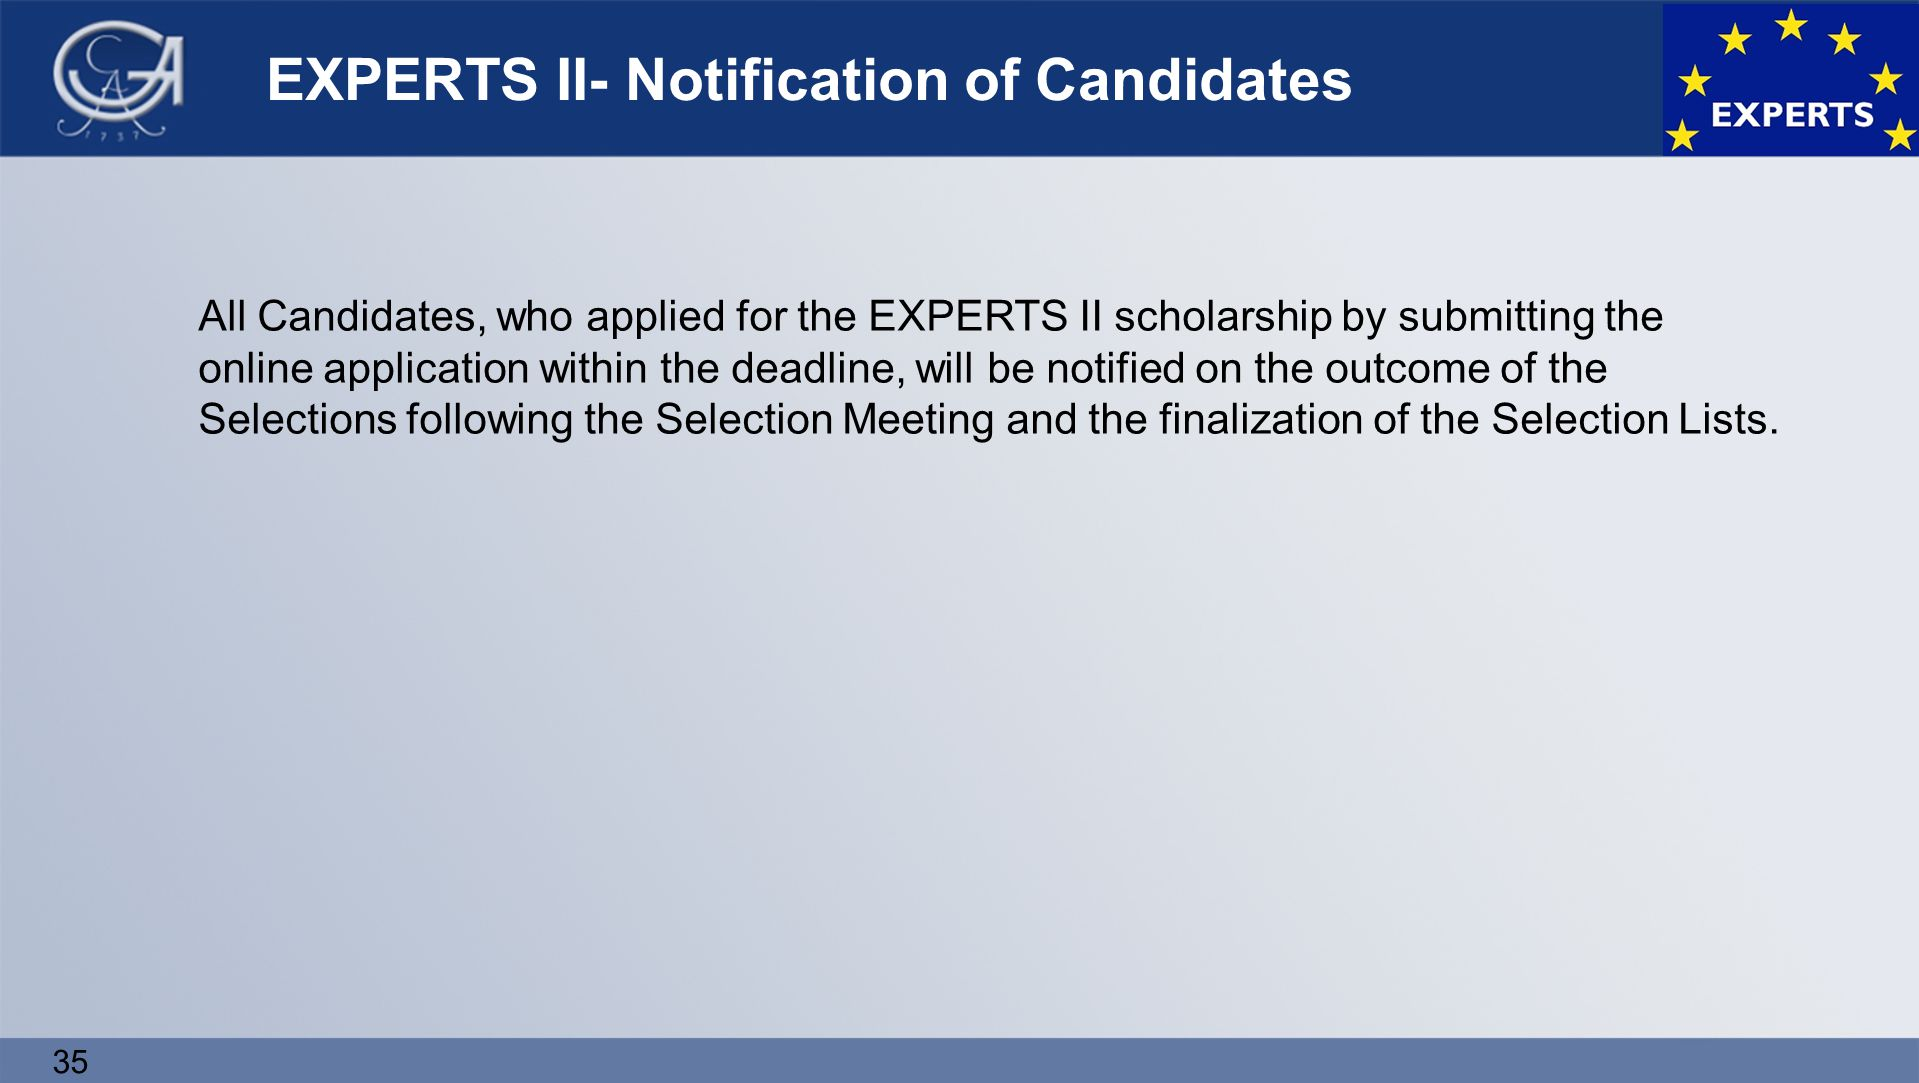 35 EXPERTS II- Notification of Candidates All Candidates, who applied for the EXPERTS II scholarship by submitting the online application within the deadline, will be notified on the outcome of the Selections following the Selection Meeting and the finalization of the Selection Lists.